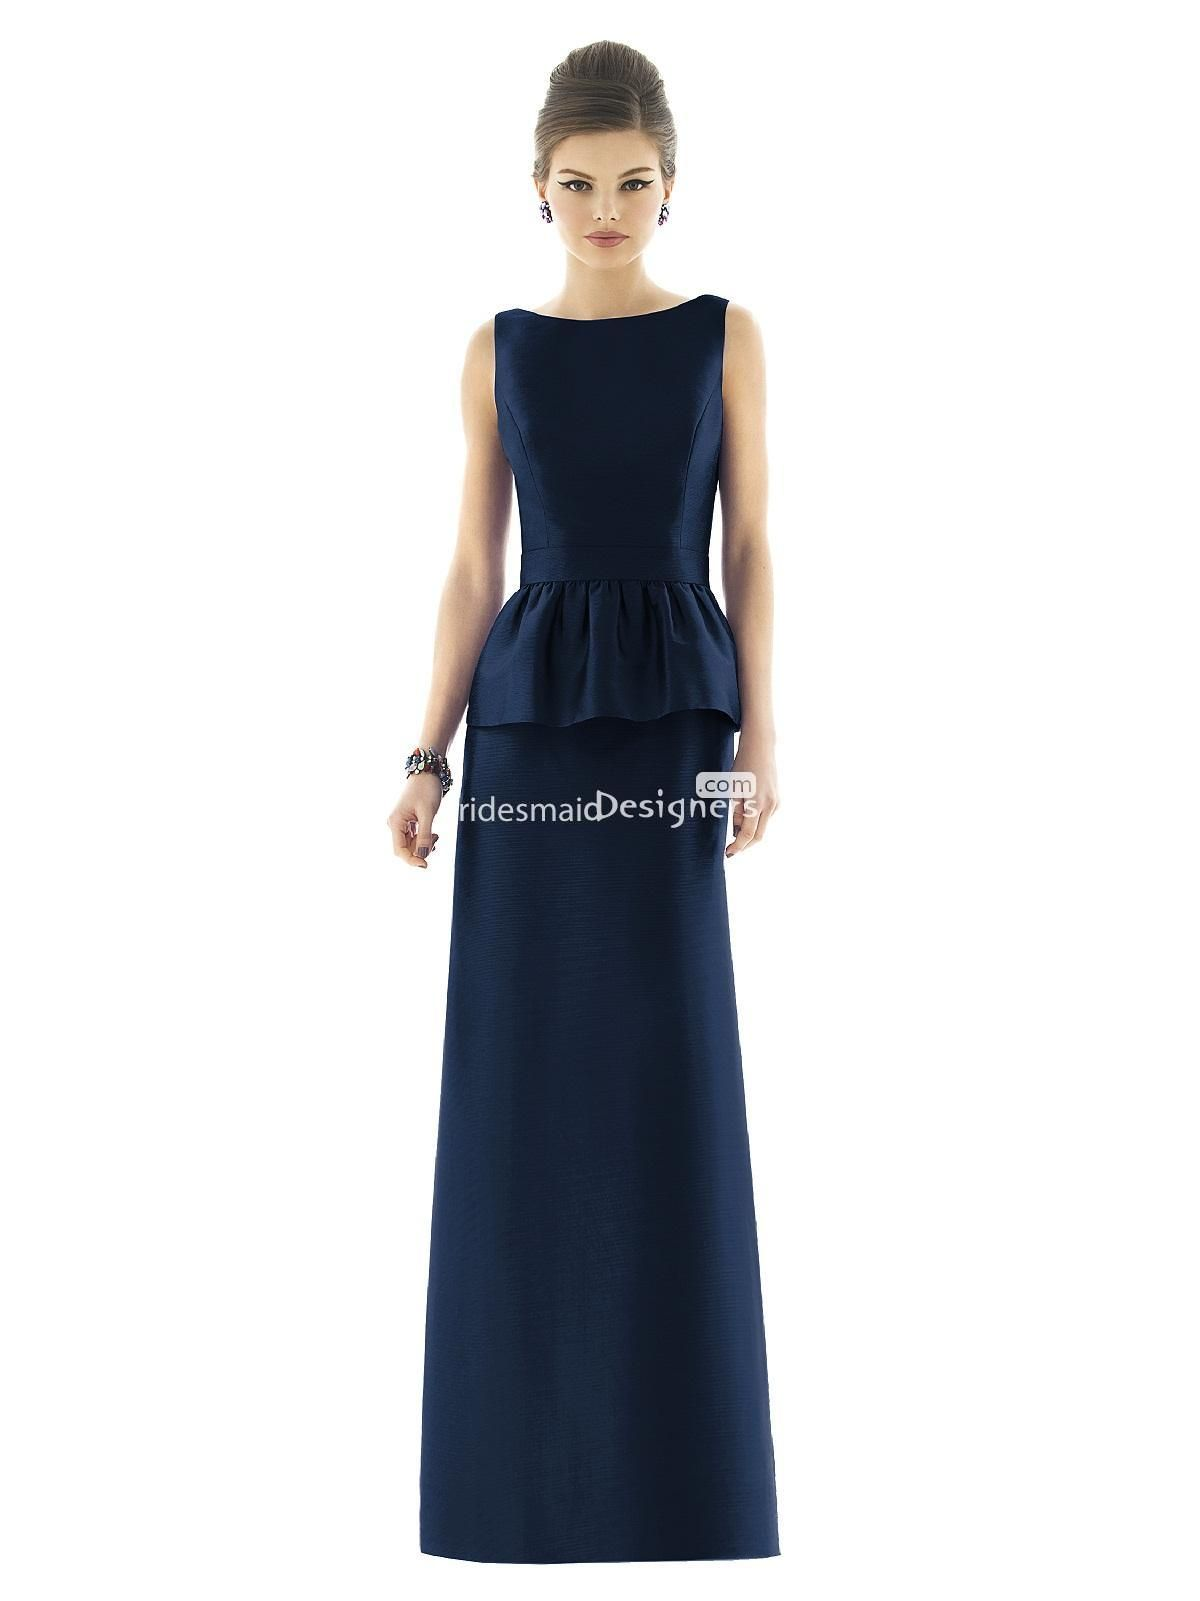 Stylish dark blue sleeveless floor length boat neck sheath peplum stylish dark blue sleeveless floor length boat neck sheath peplum satin bridesmaid dress ombrellifo Gallery